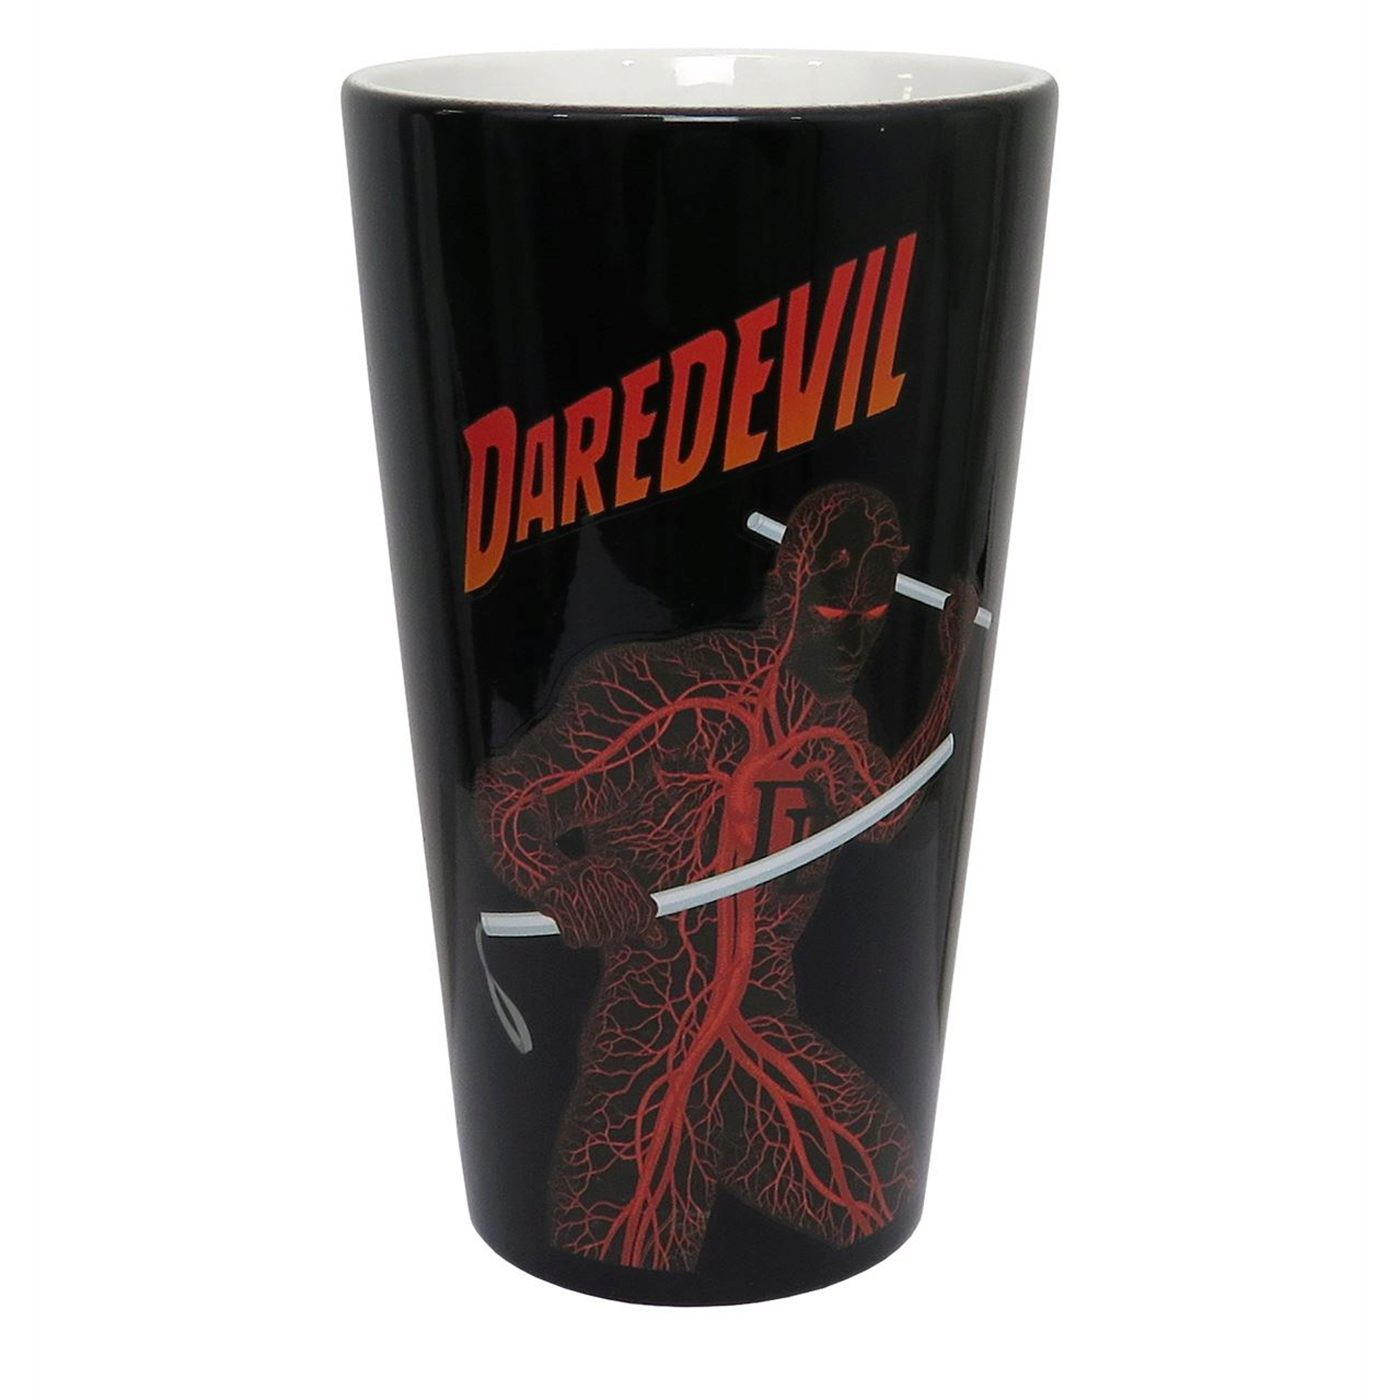 Daredevil The Man Without Fear Pint Glass